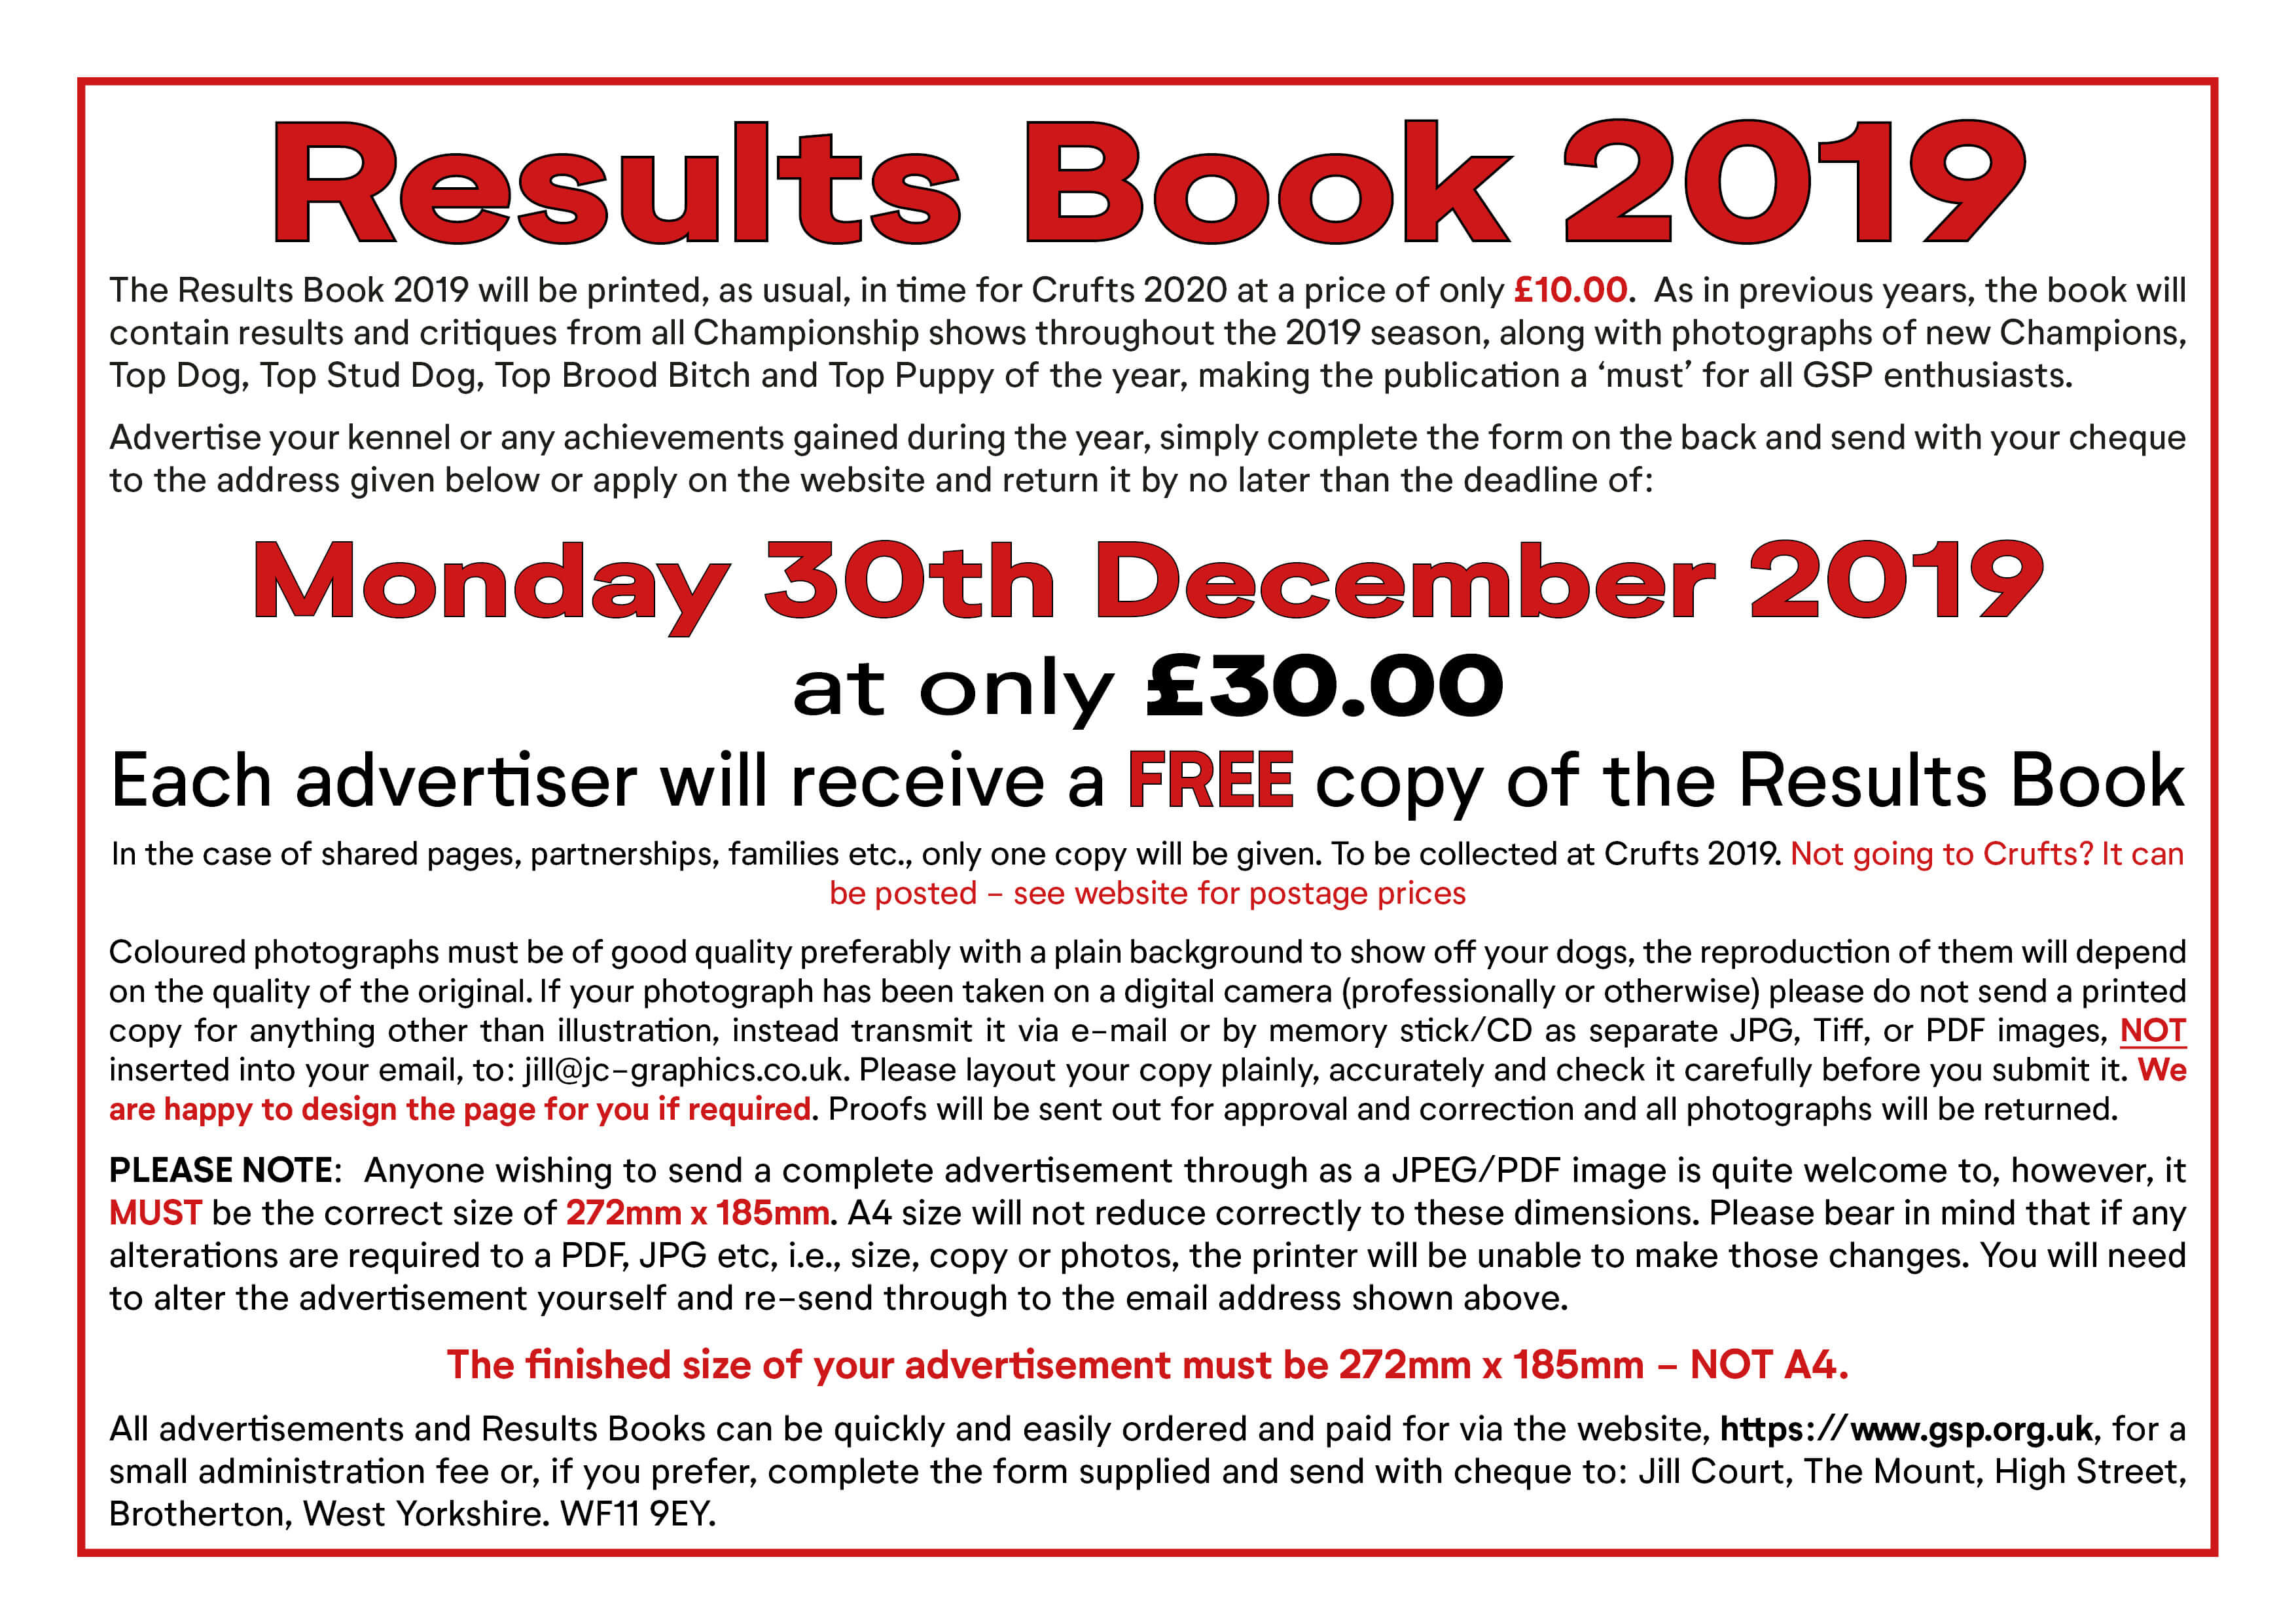 Results Book Advertisements 2019